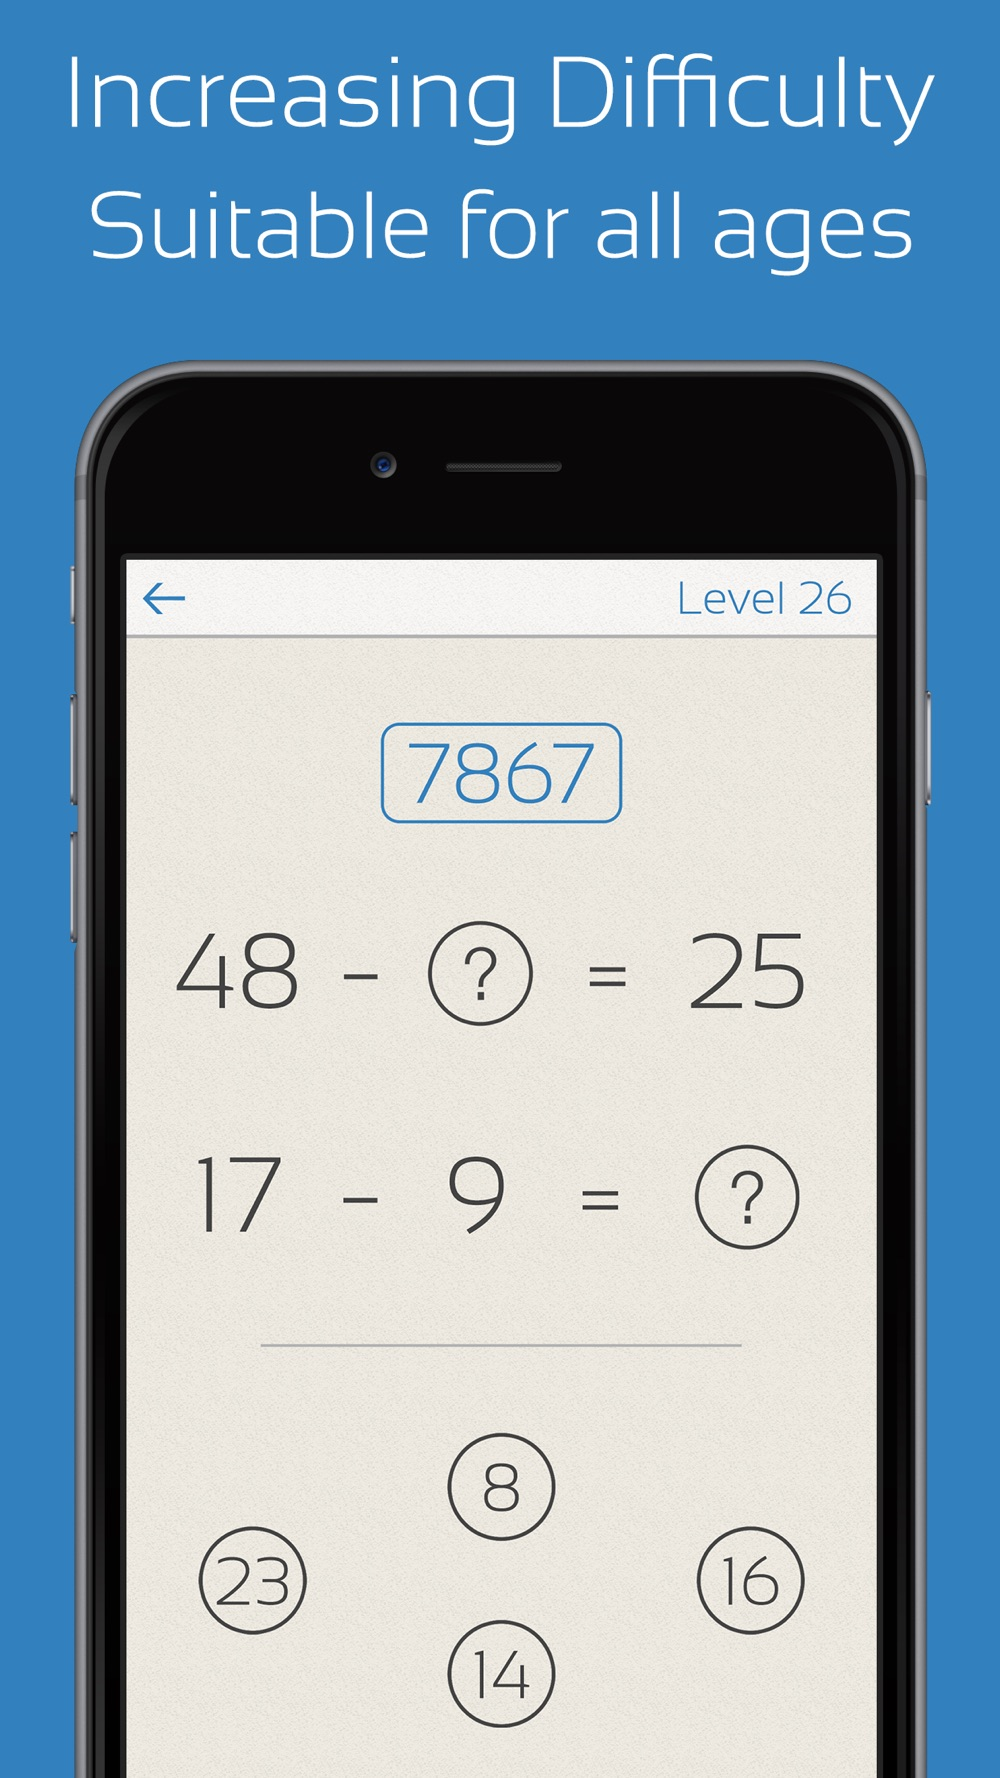 Hack tool for Pure Math - Practice and Improve Your Math Skills (Addition, Subtraction, Multiplication and Division)